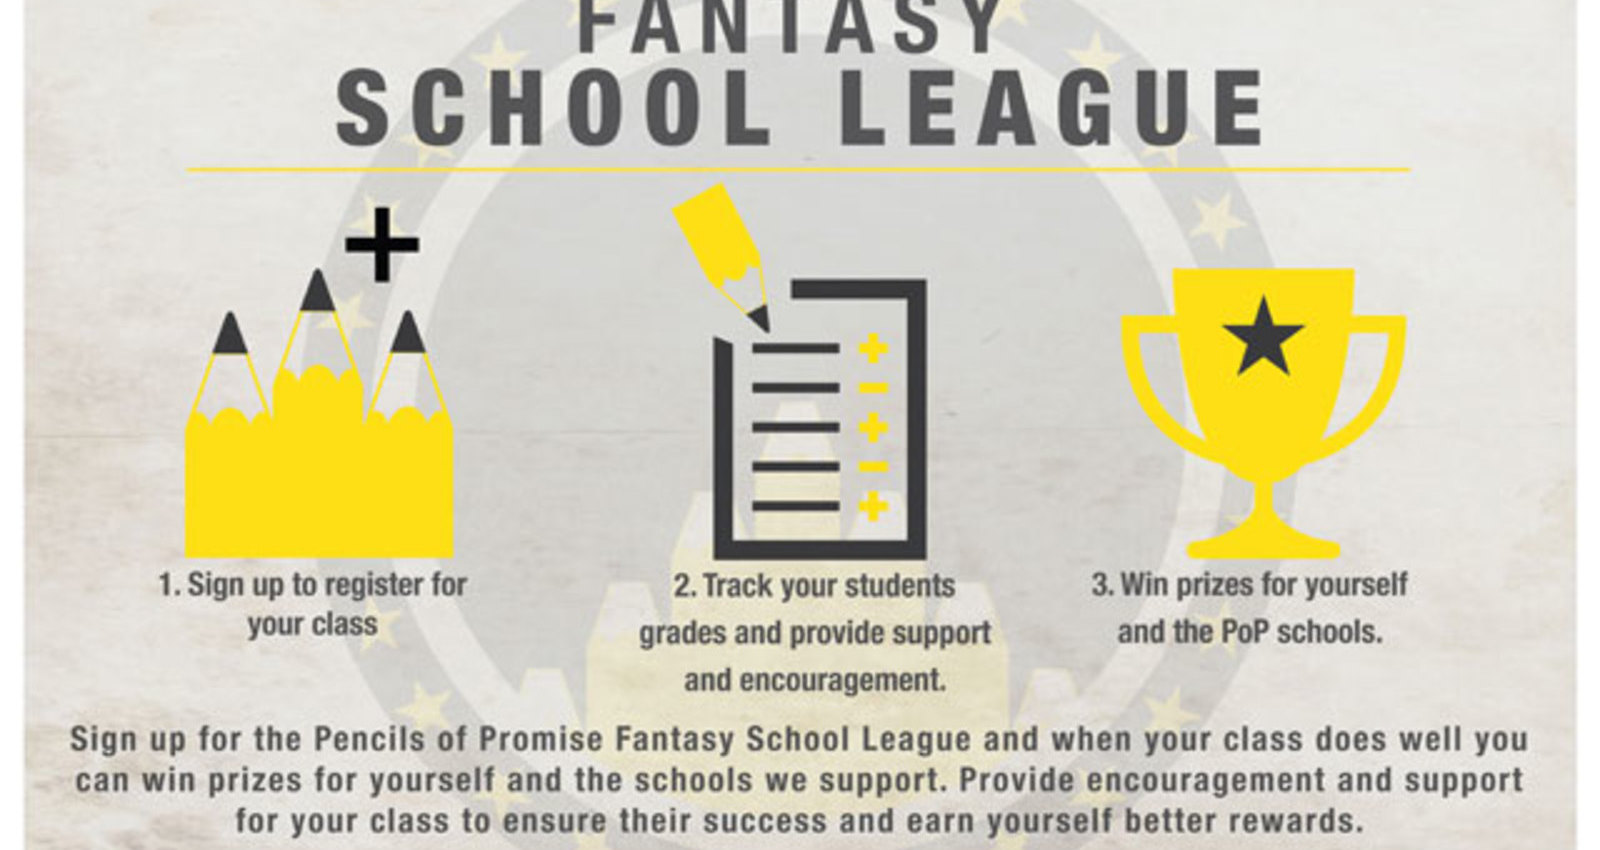 Fantasy School League